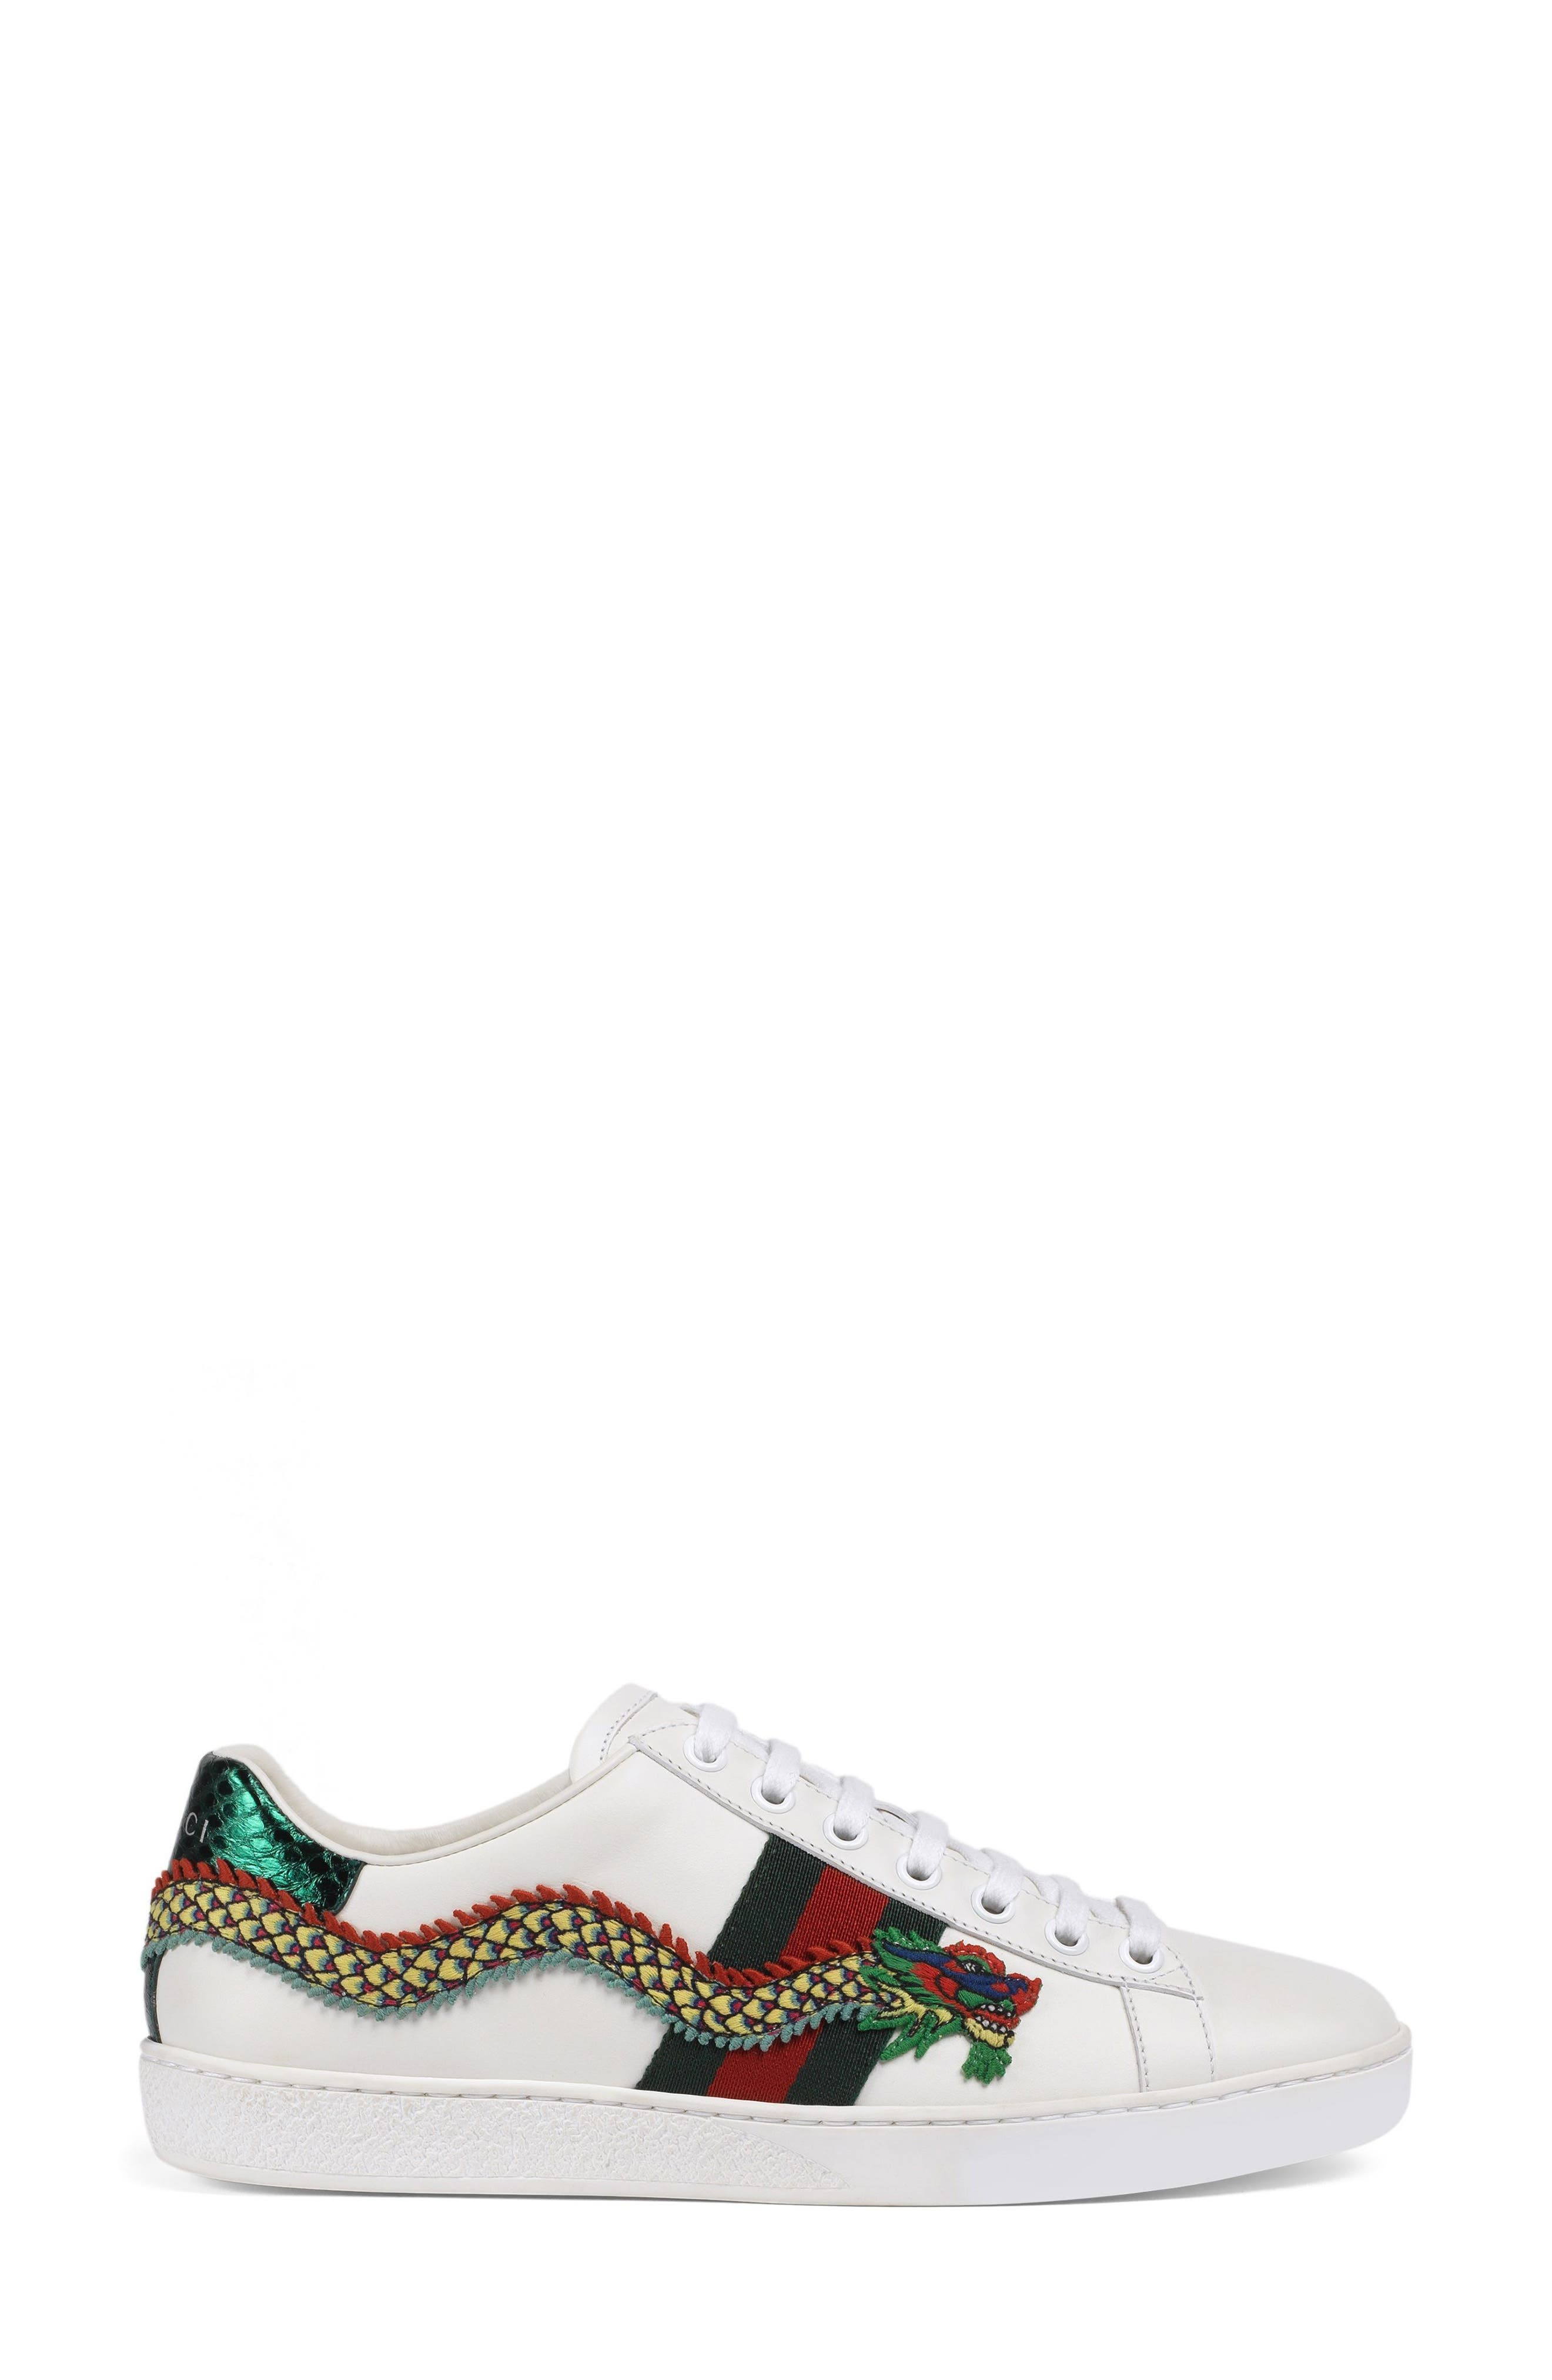 Designer Baby Shoes Gucci Sneakers - Style Guru: Fashion ...